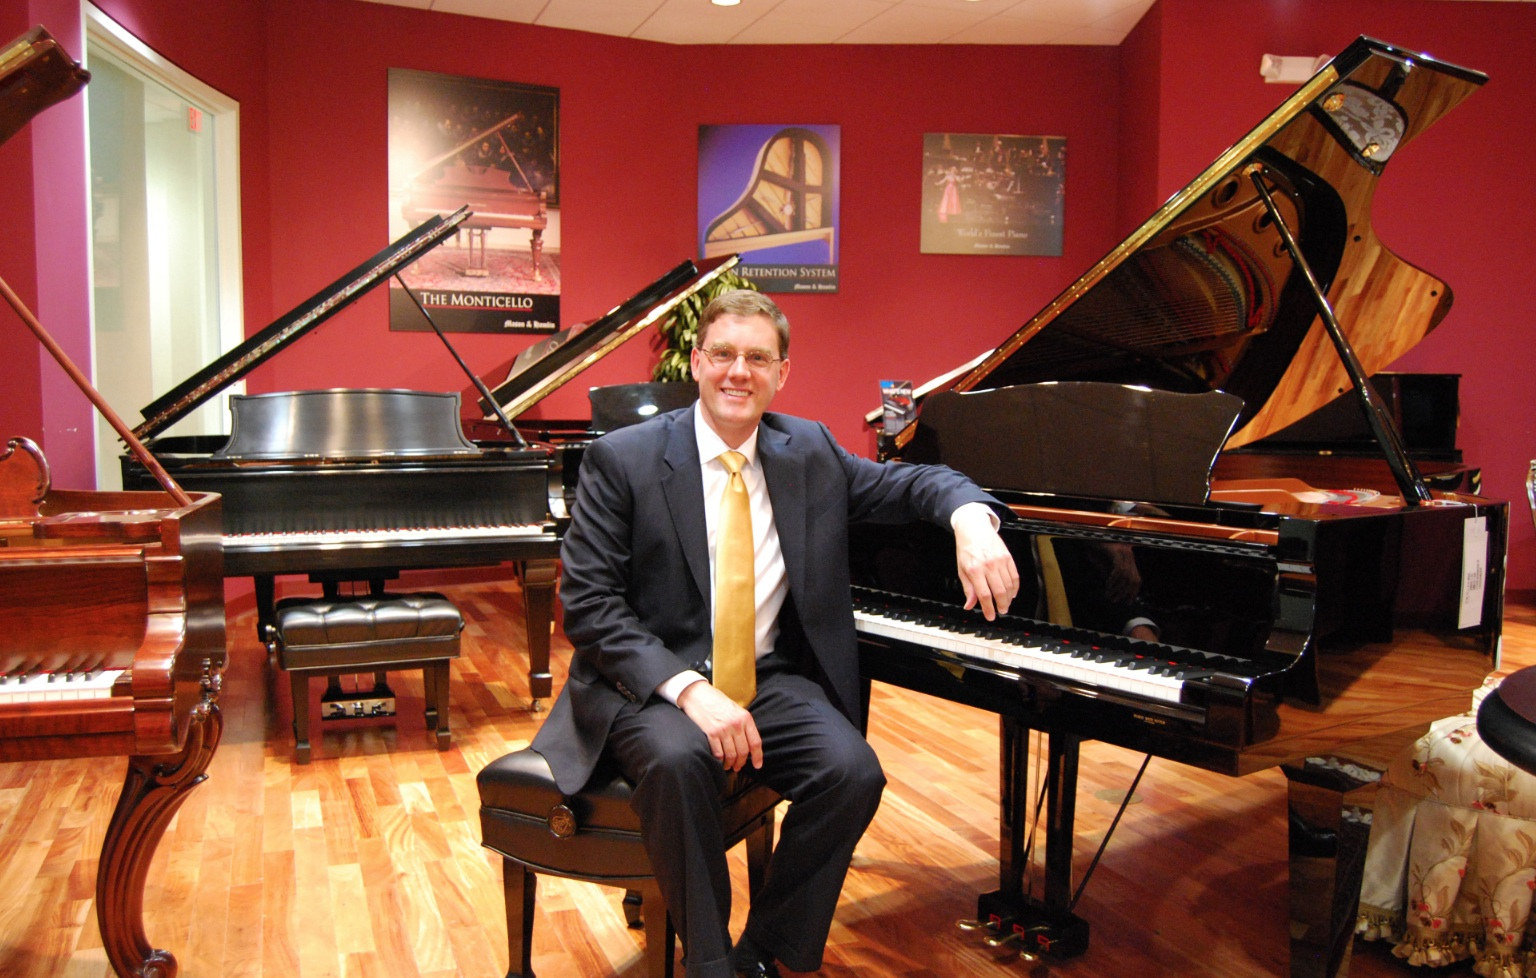 The DC area piano business is alive and well